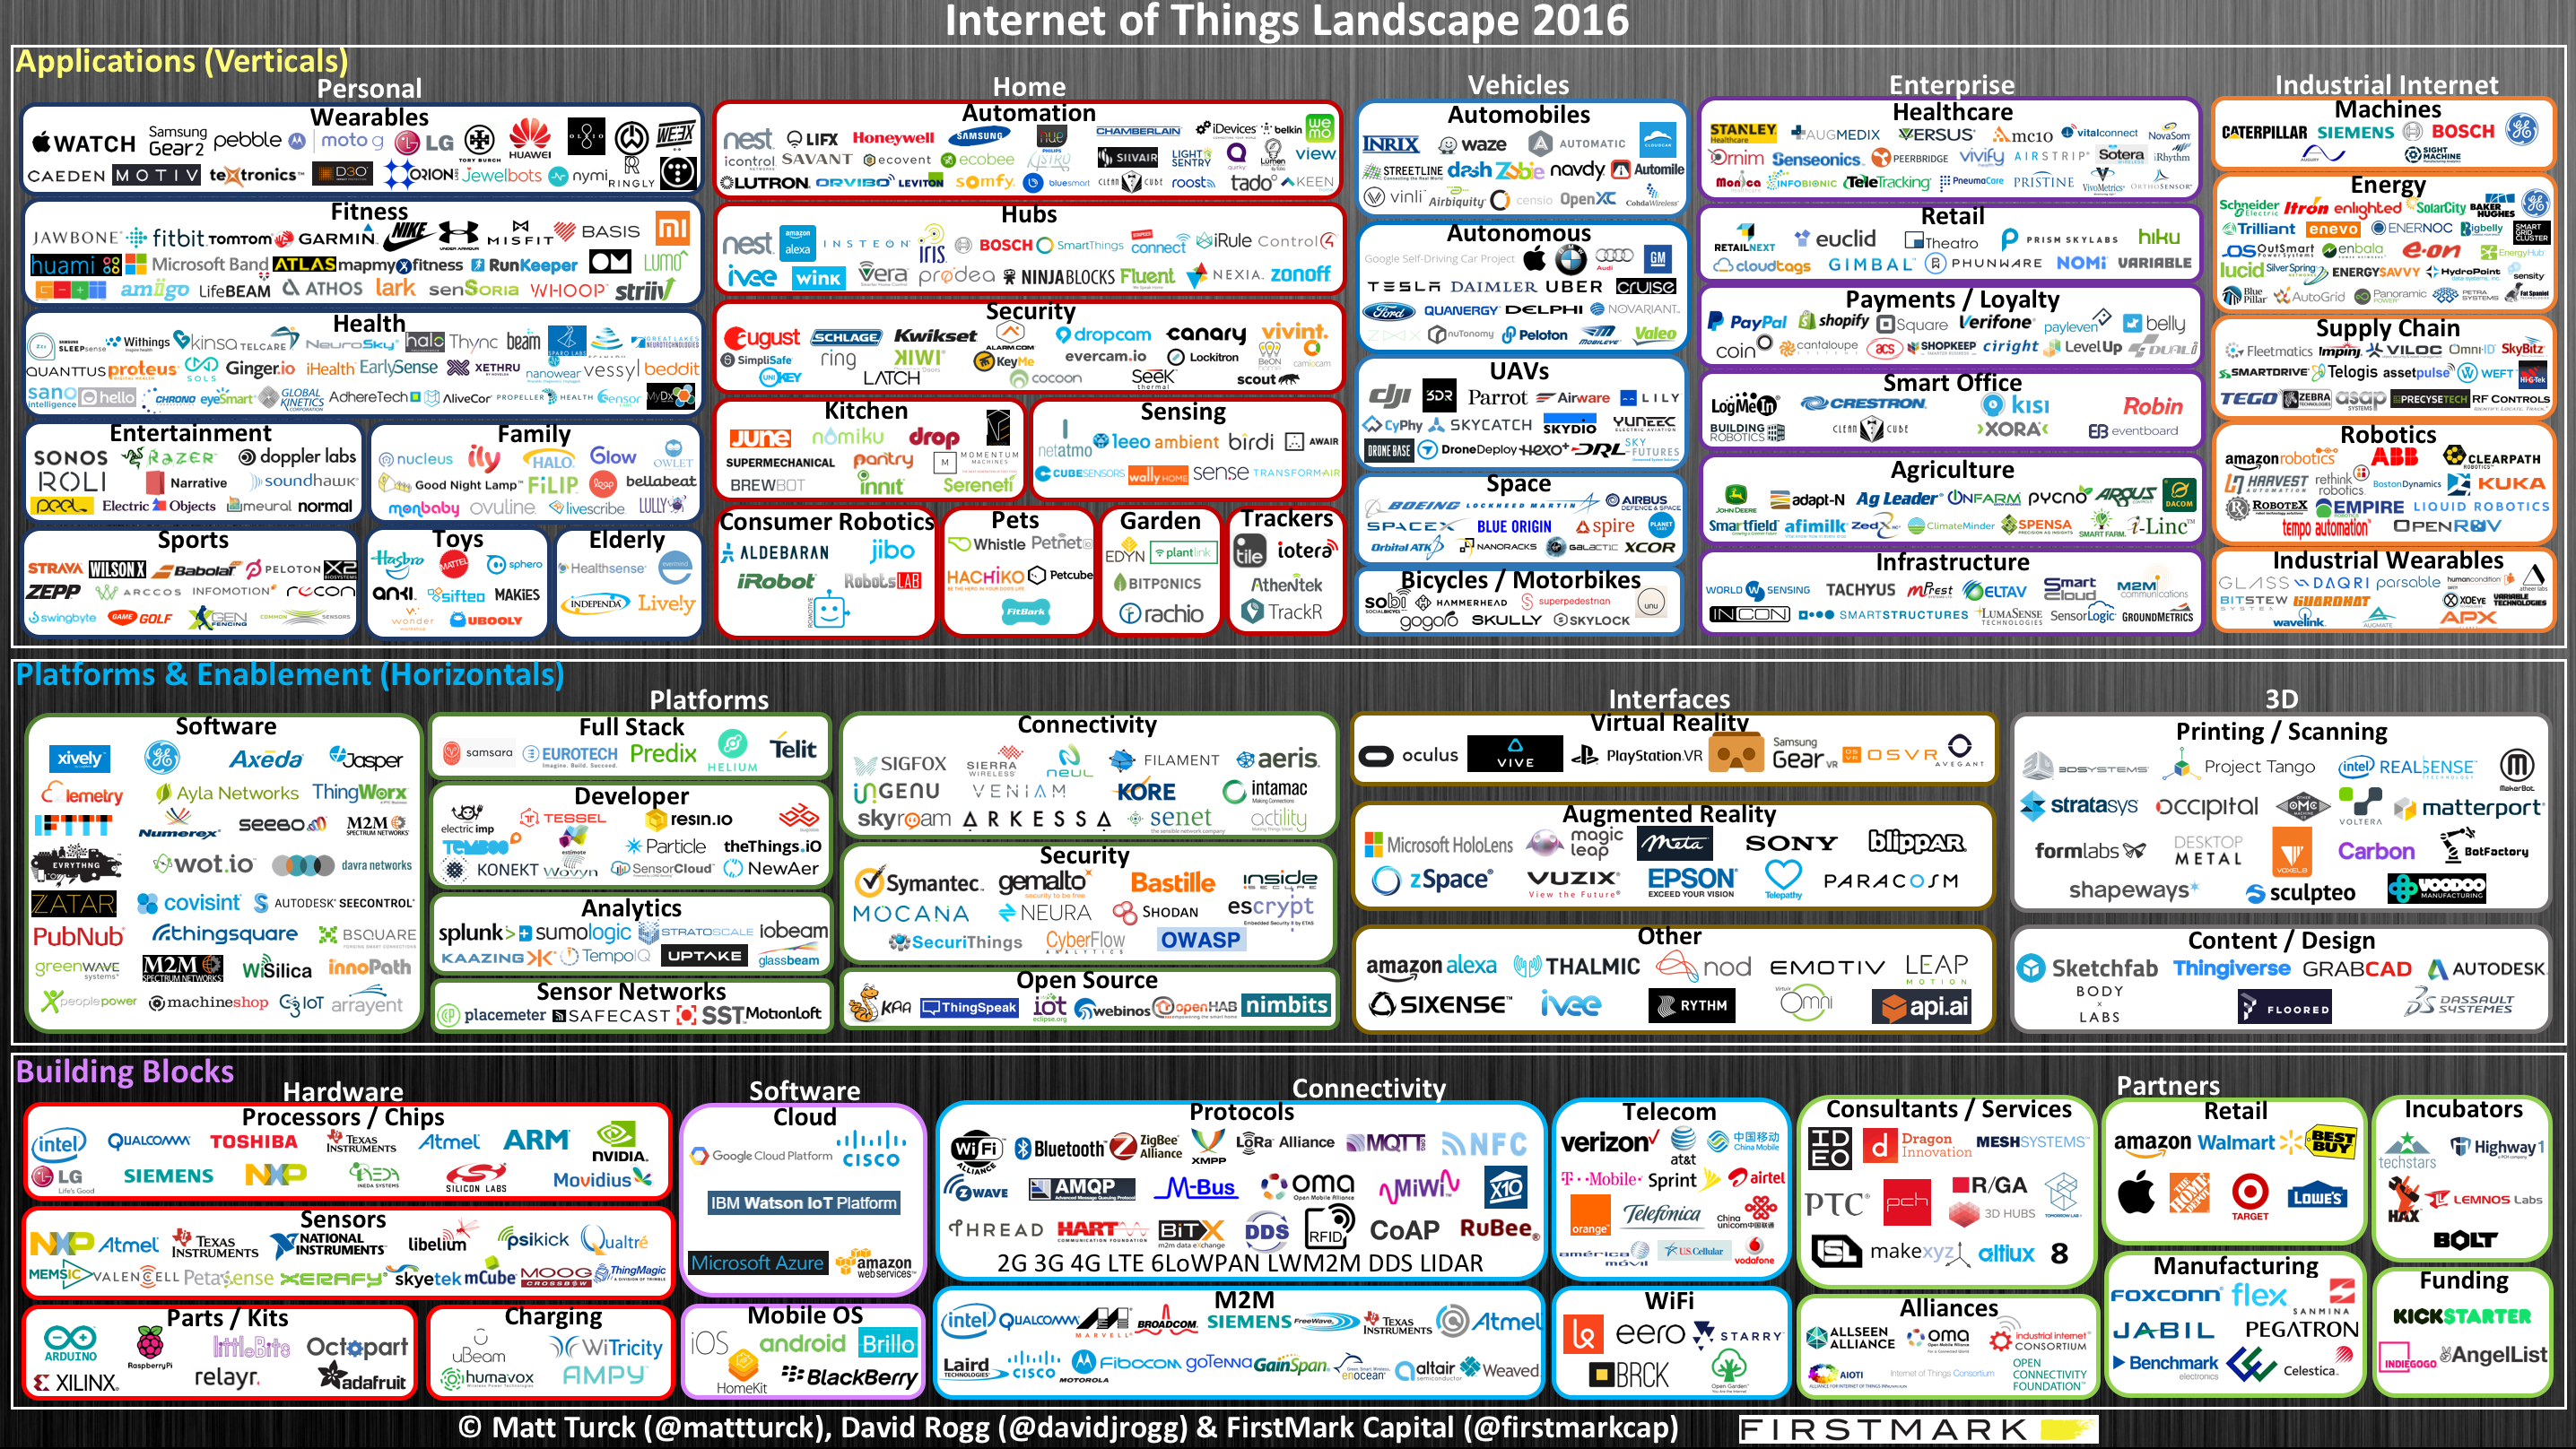 The 2016 Internet of Things Landscape